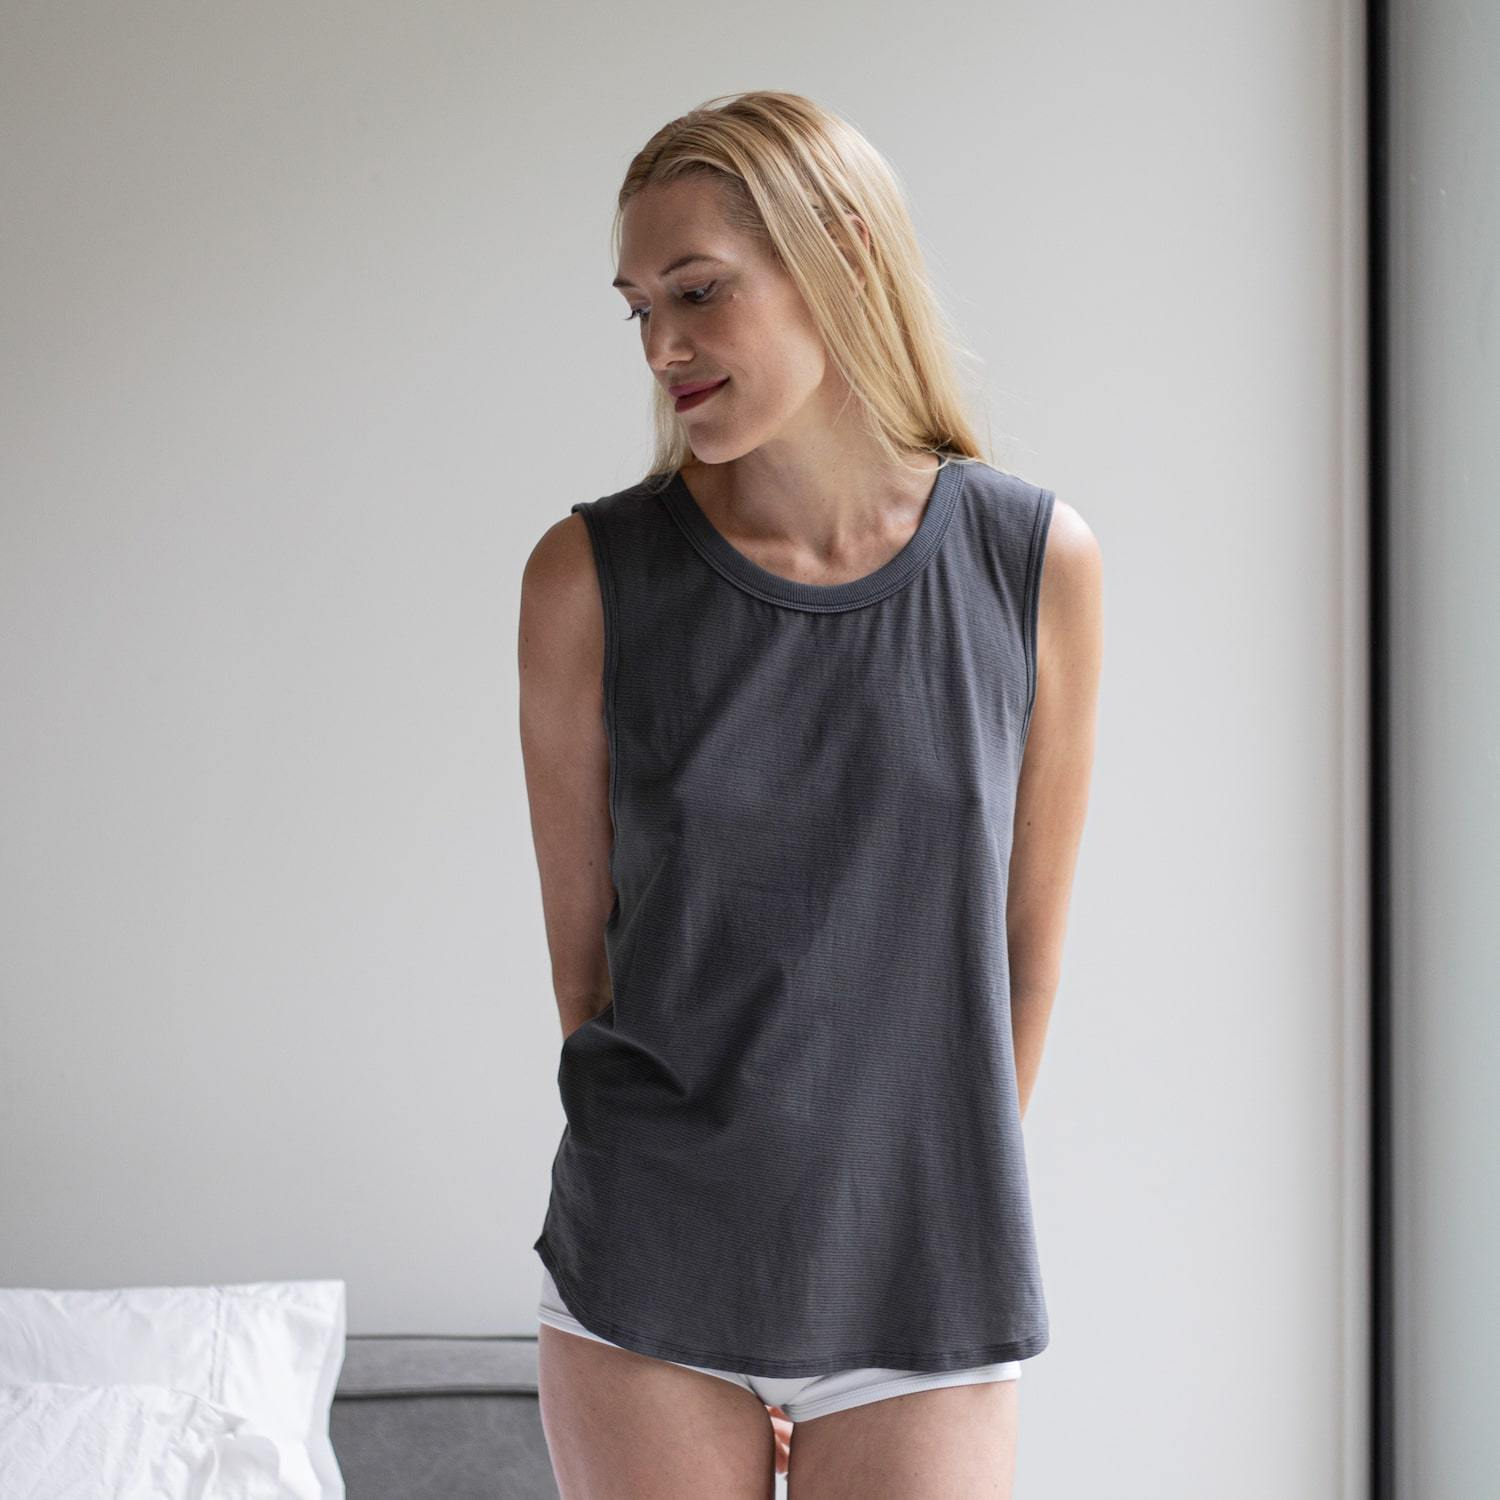 Lunya Sleepwear Cool Muscle Tee - #Eclipse